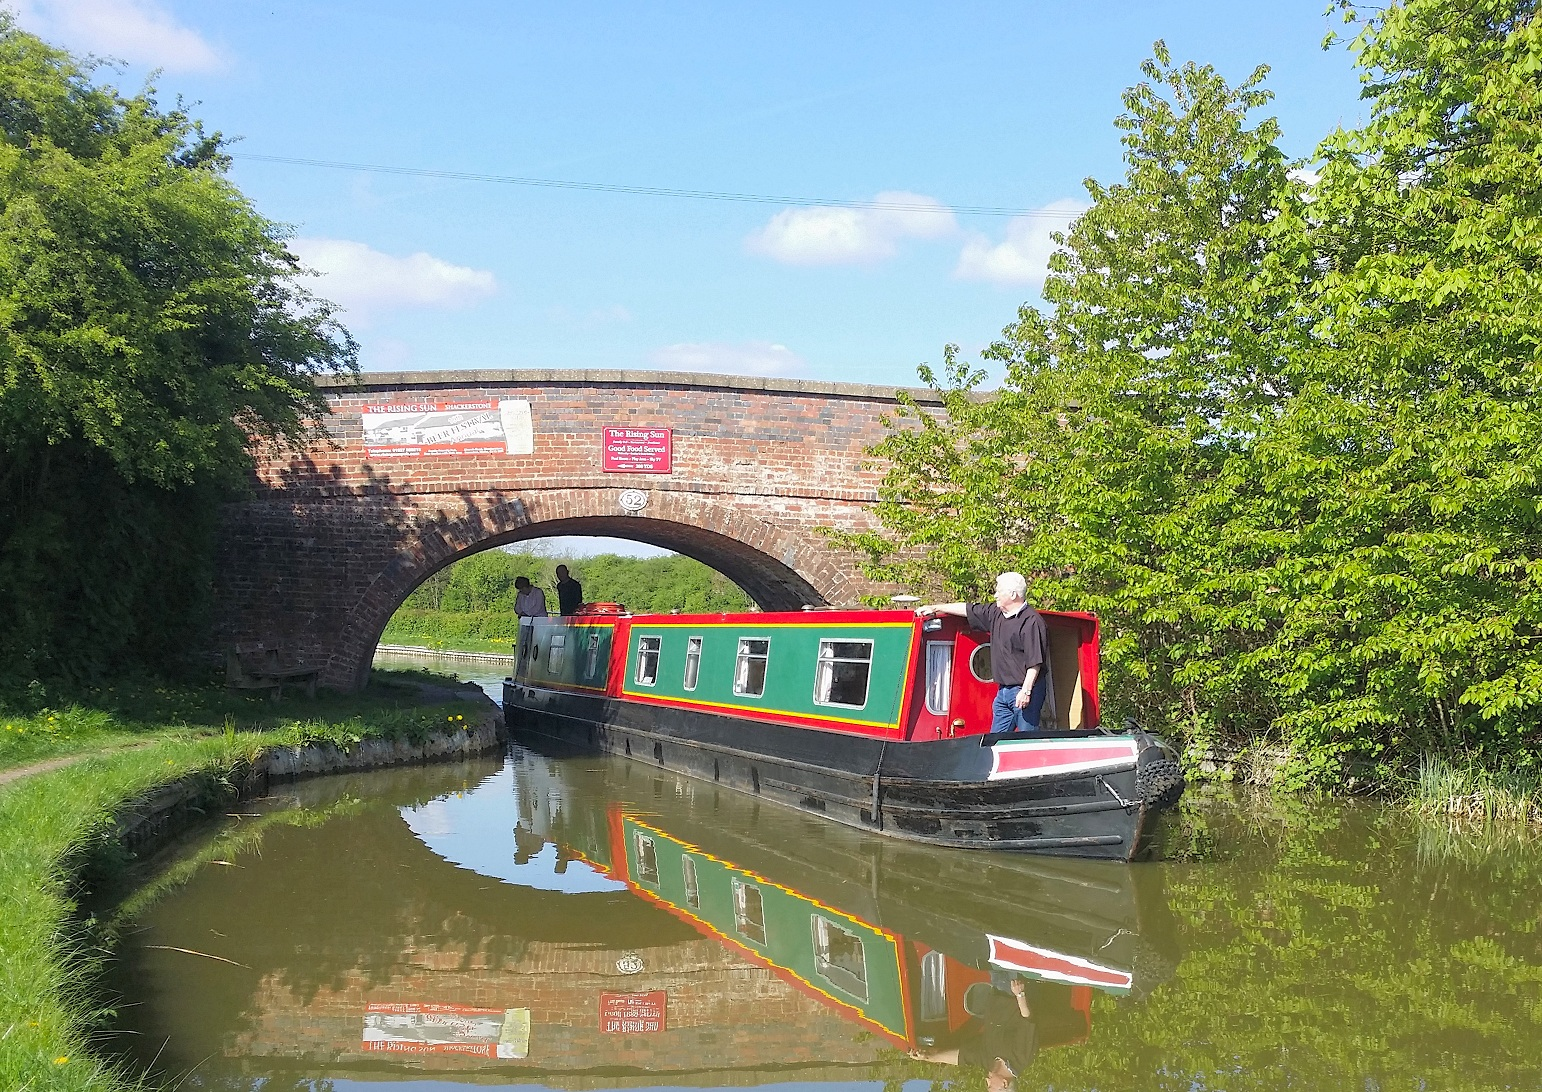 New boat Midland Mallard from Market Bosworth